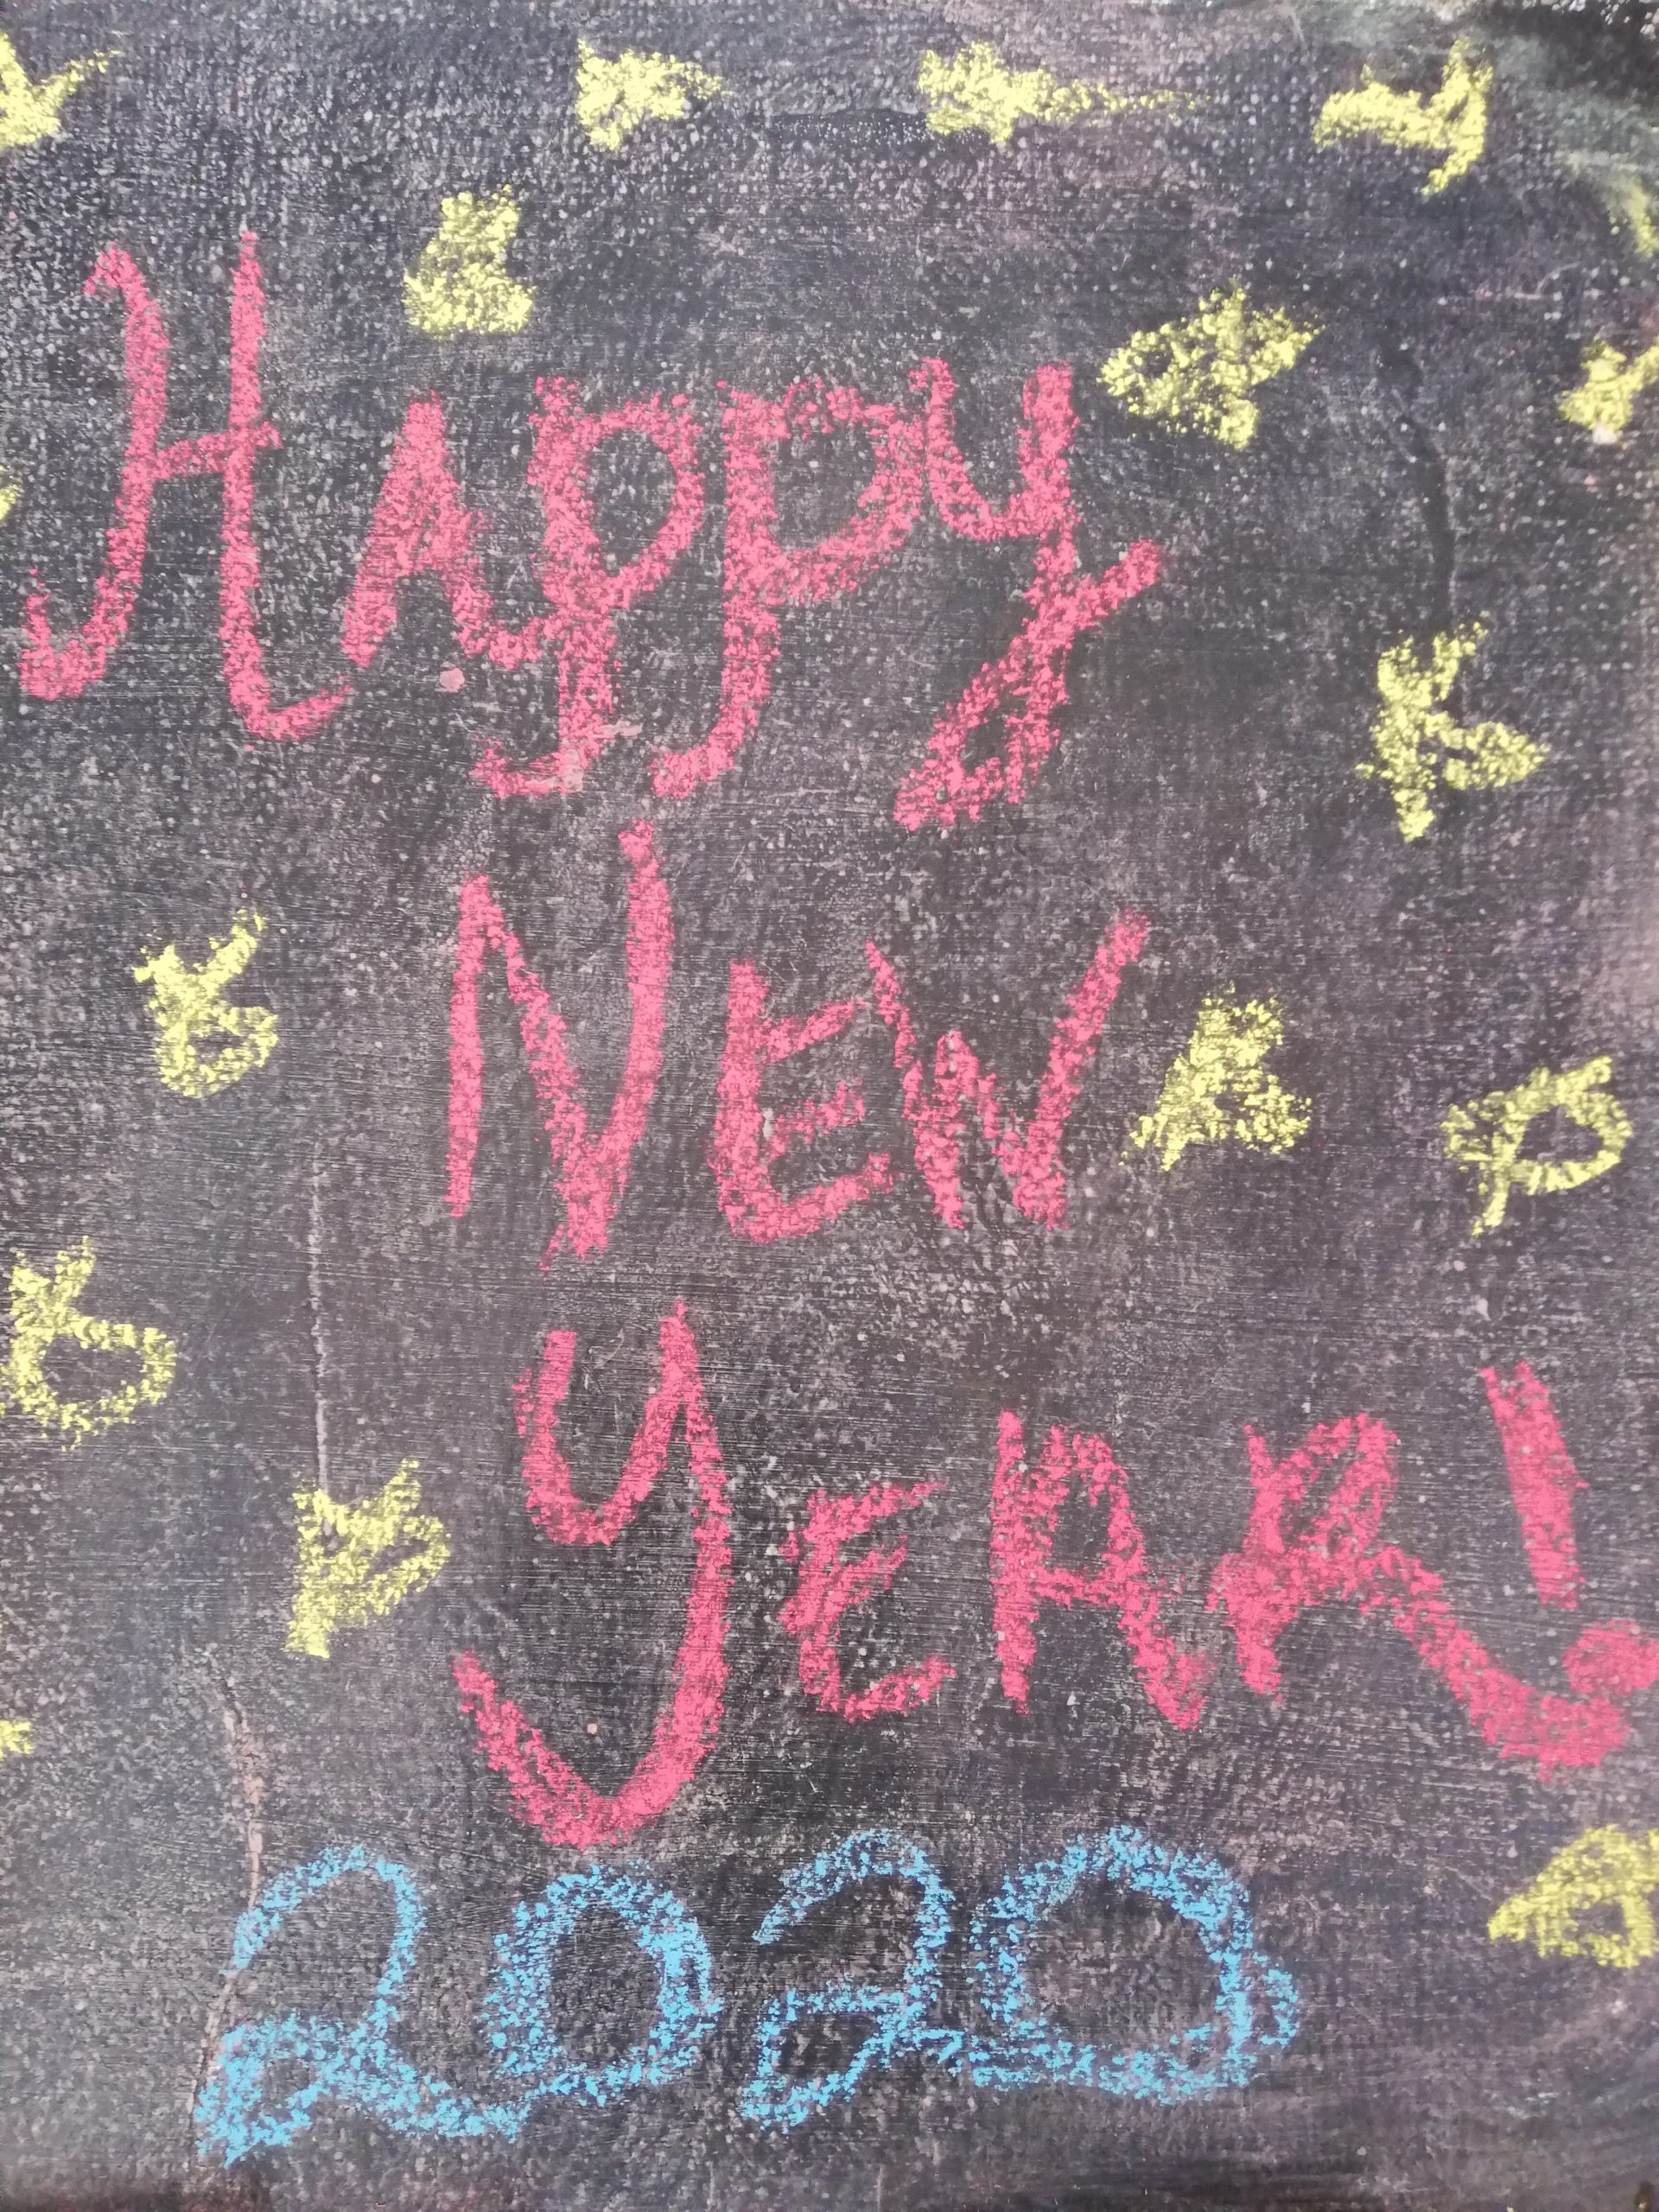 Another decade gone! Picture shows 'happy New Year 2020' in red chalk on the sidewalk with yellow stars